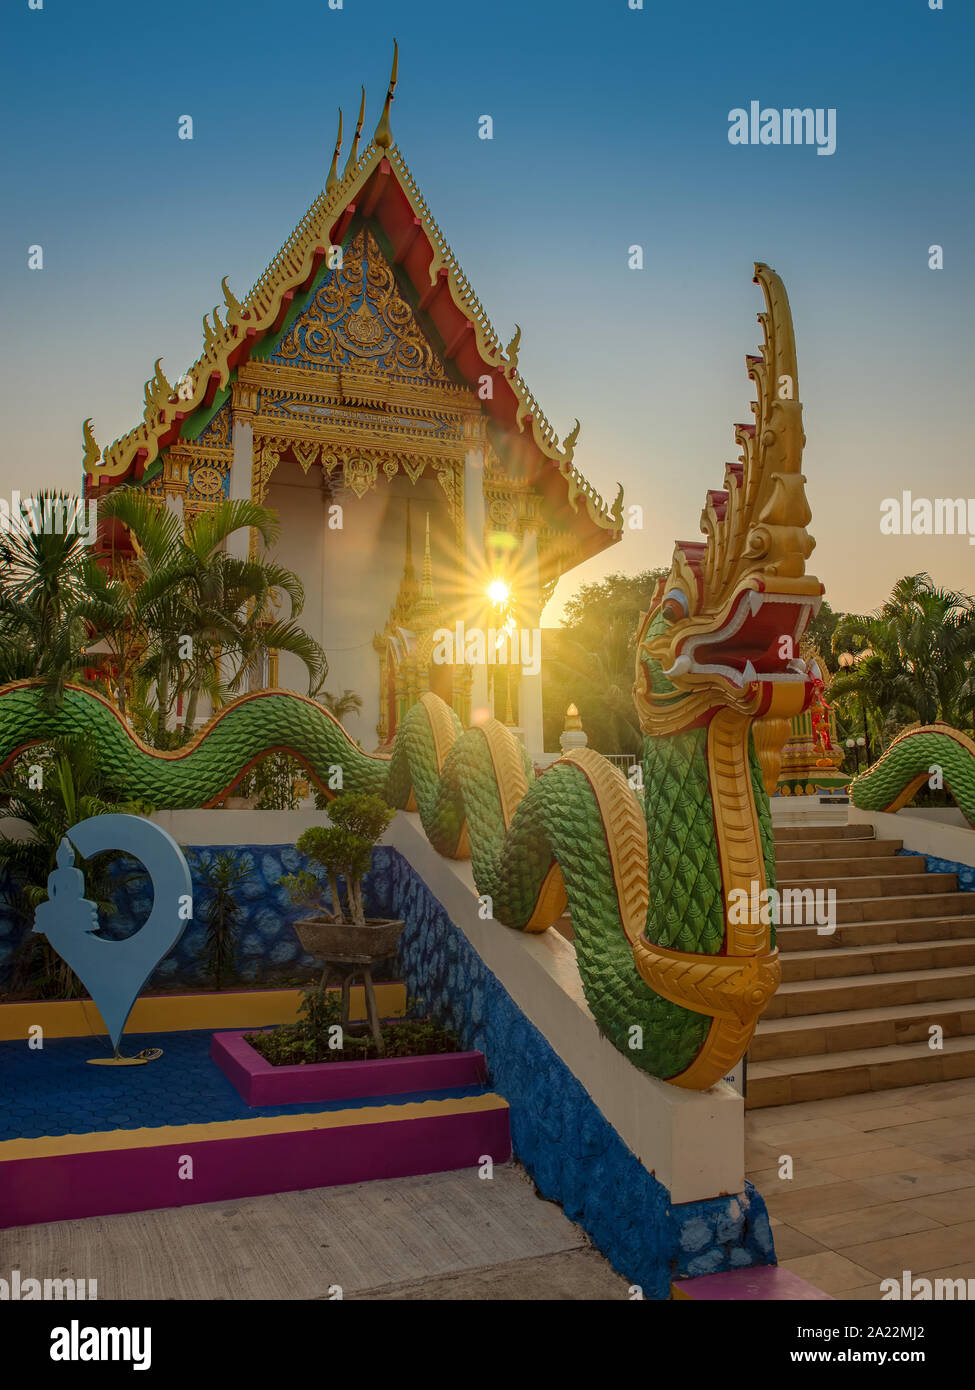 Wat Karon buddhist temple in Phuket island, Thailand. Amazing morning lights and brigt sun in this colorful picture. Stock Photo